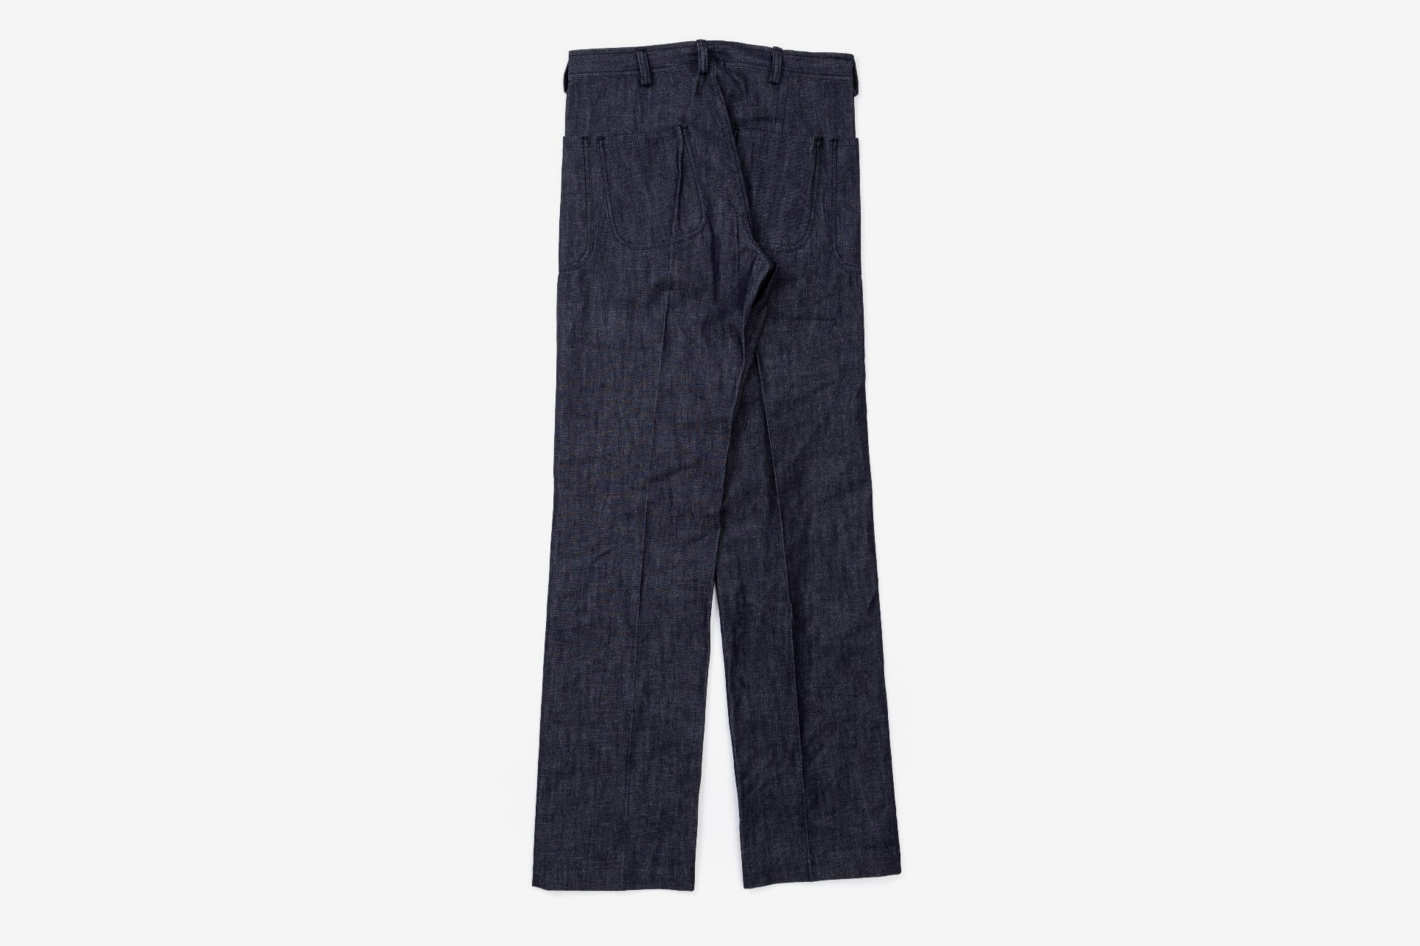 Clothing, Shoes & Accessories Bottoms Lucky Brand Toddlers Boys 2t-7 7 Pocket Denim Pant Authentic Skinny Good Taste